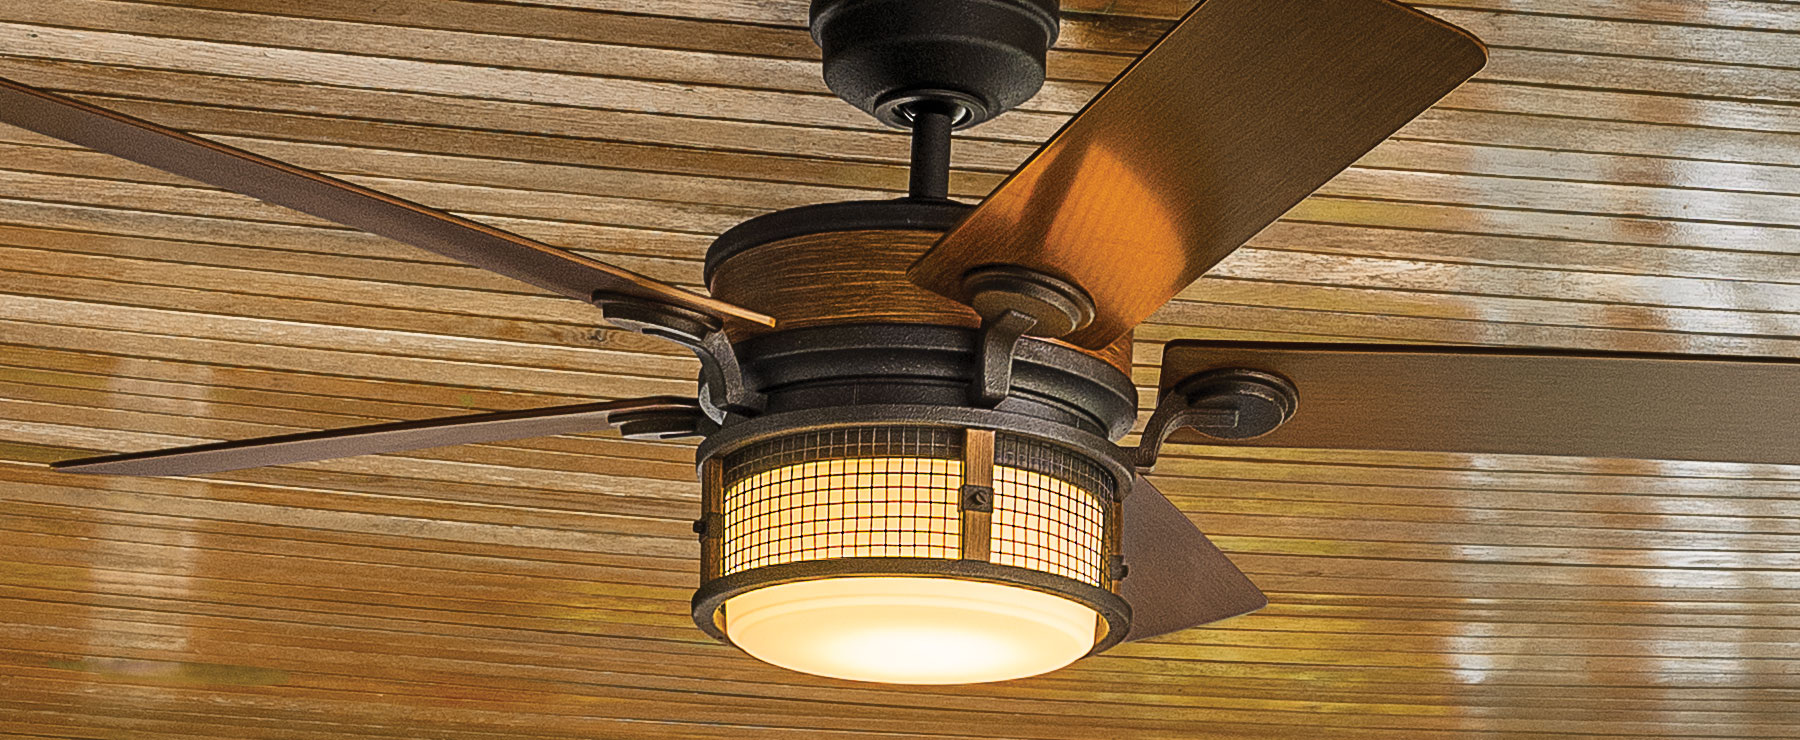 7 things to know about ceiling fans